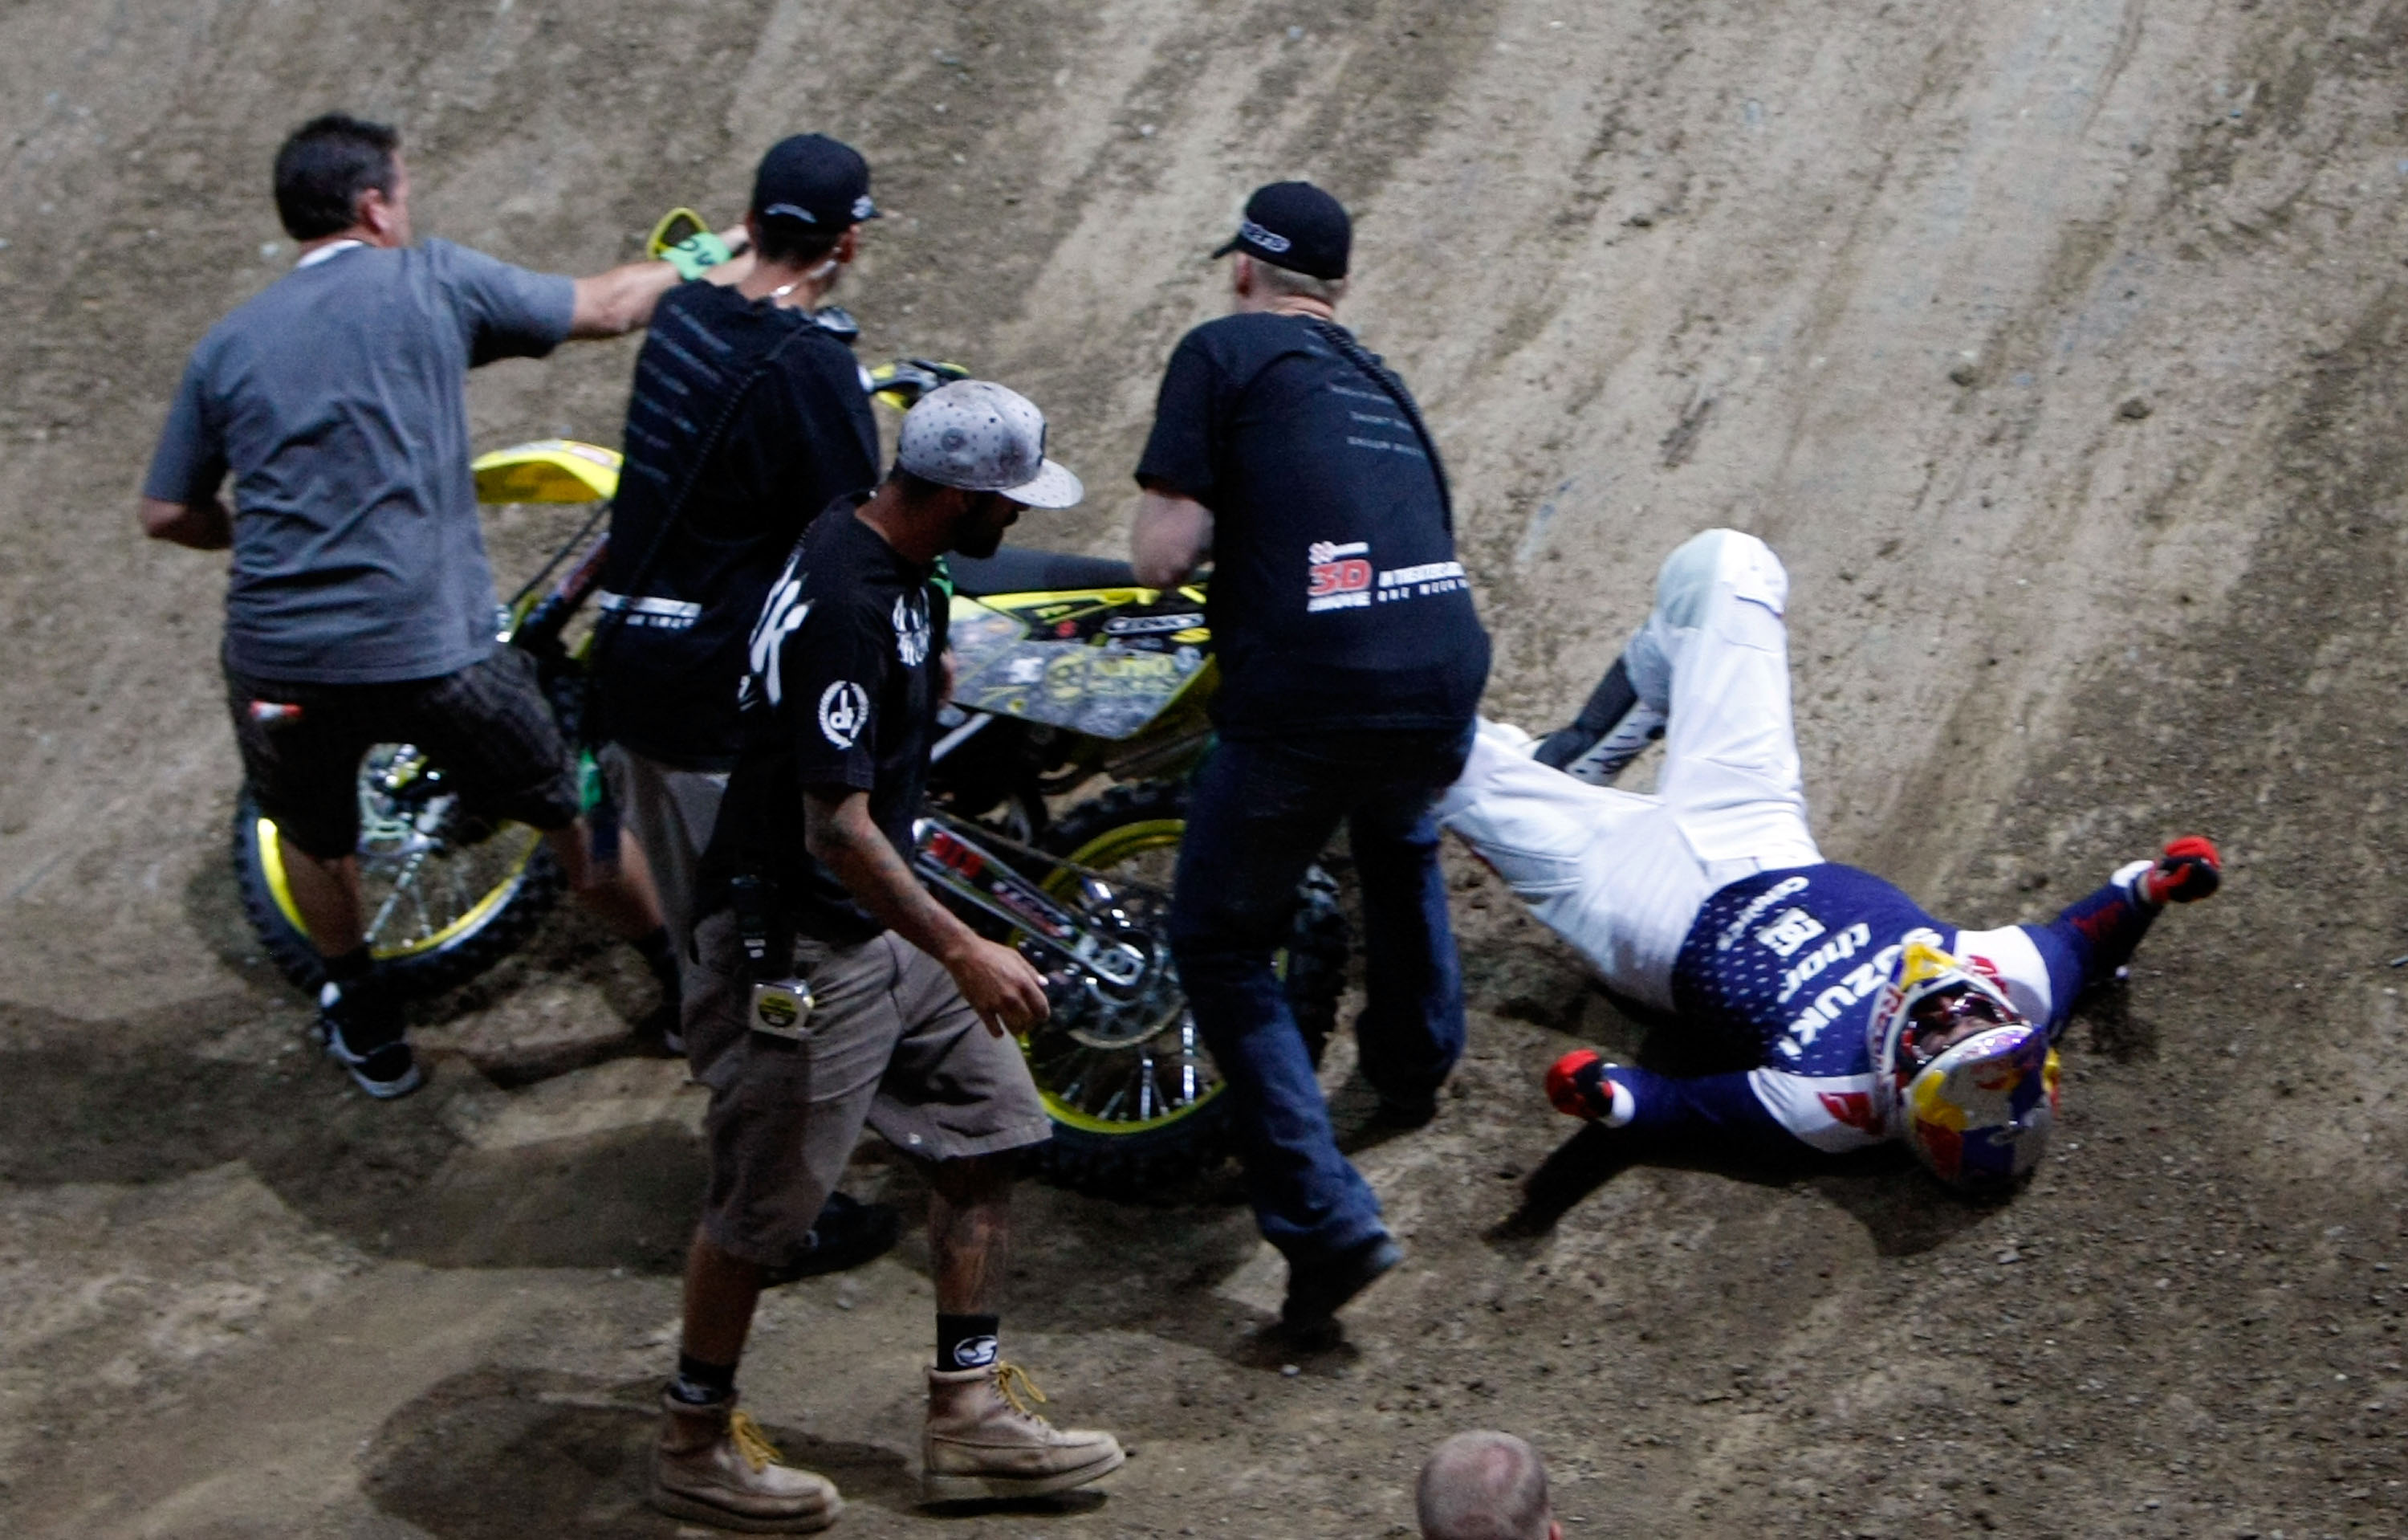 LOS ANGELES, CA - JULY 31:  Travis Pastrana is attended to after crashing while competing in the Moto X Best Trick Final during X Games 15 at Staples Center on July 31, 2009 in Los Angeles, California.  (Photo by Jeff Gross/Getty Images)